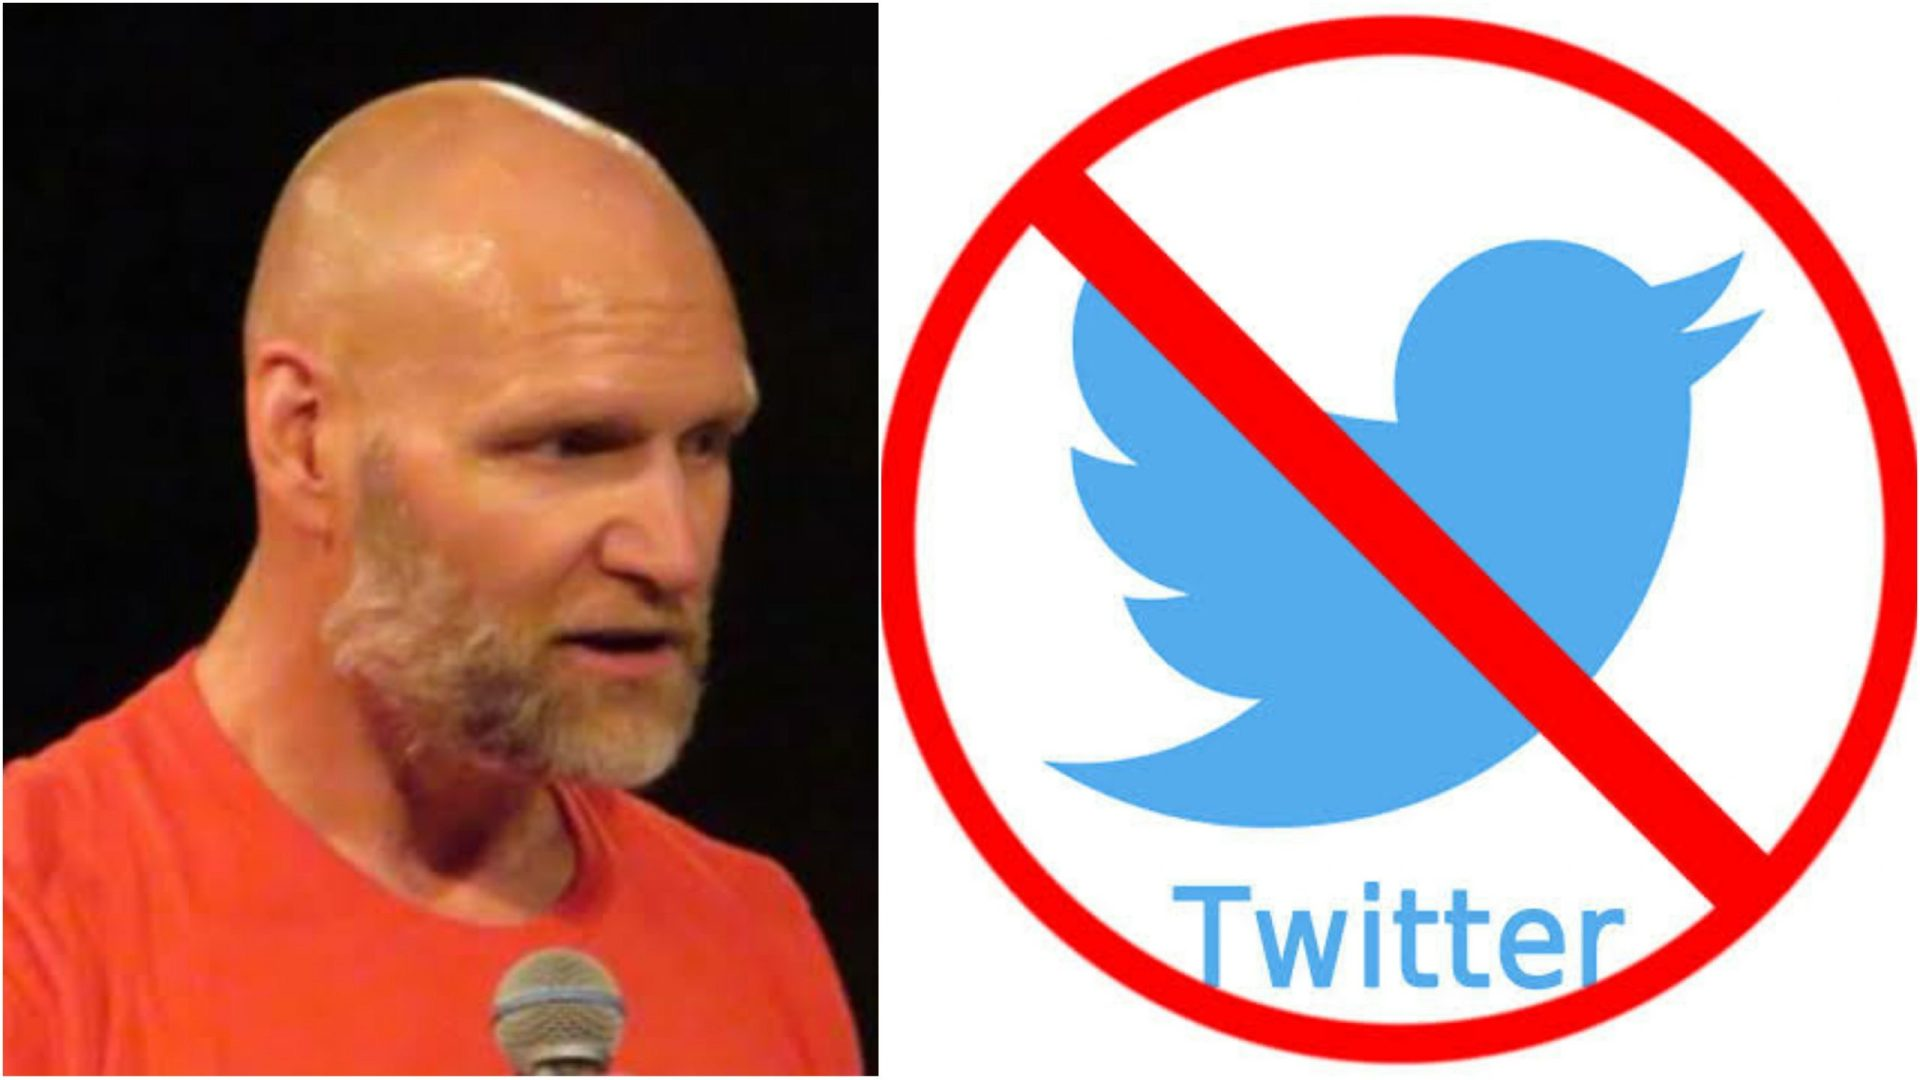 """2-time Intercontinental Champion Val Venis banned from Twitter for breaching its """"Child Sexual Exploitation Policy"""" - THE SPORTS ROOM"""